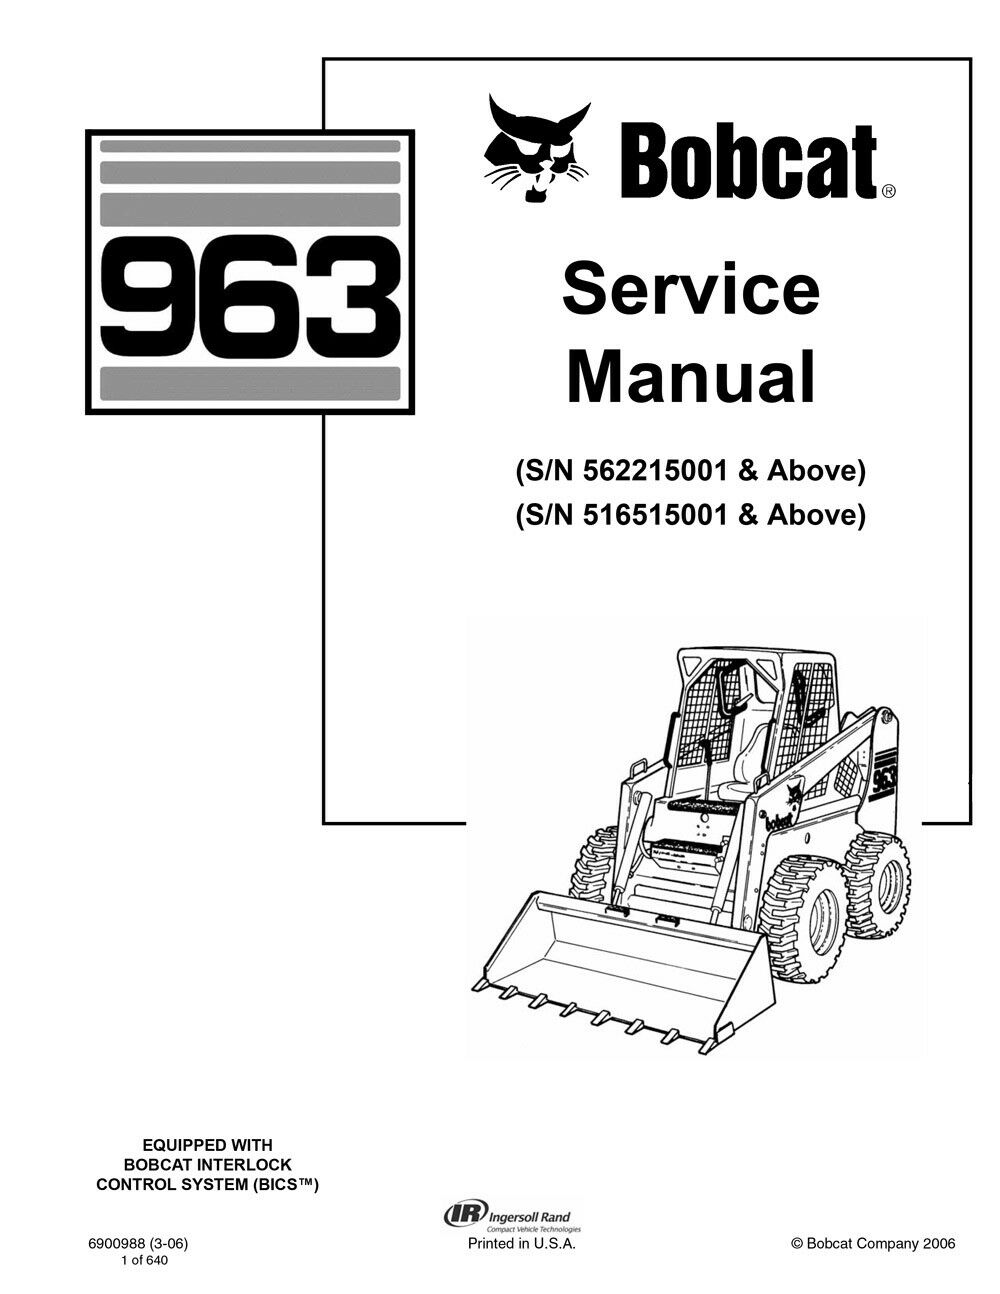 New Bobcat 963 Skid Steer Loader 2006 Edition Service